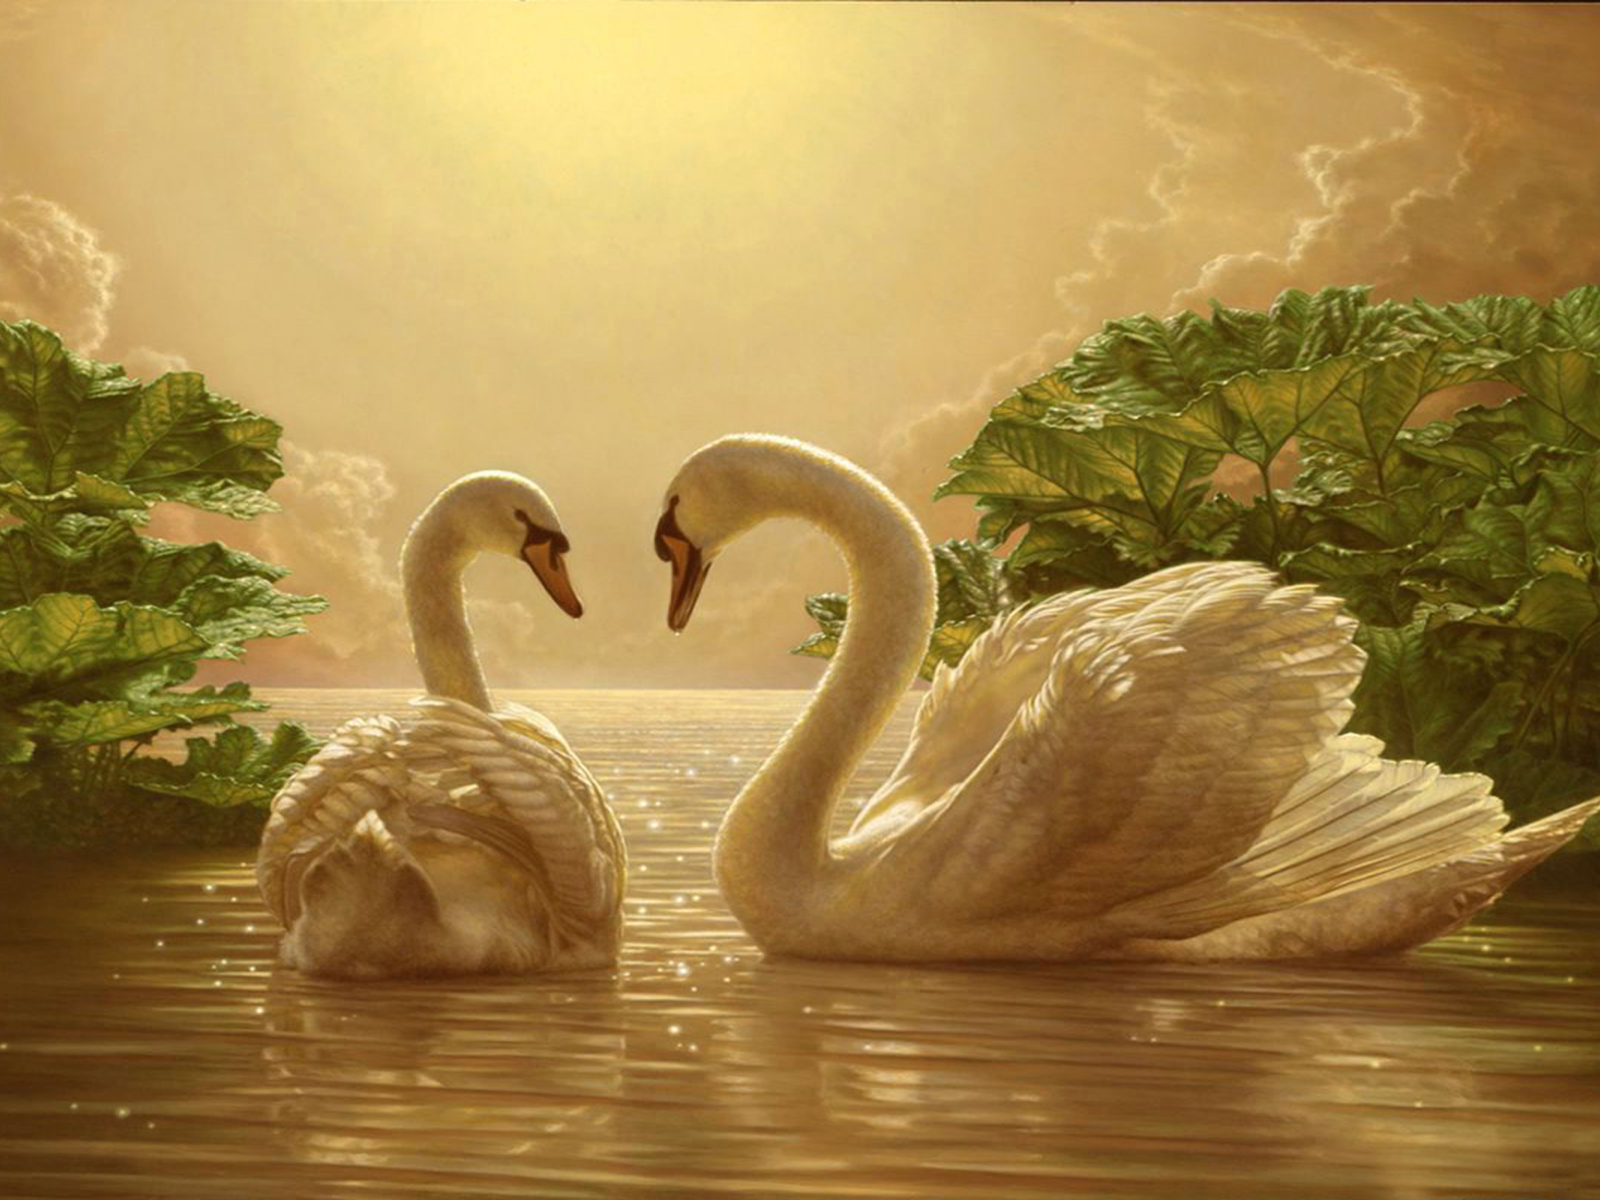 Cars The Movie Christmas Wallpaper Beautiful Love Swan Two Romance Movie Wallpapers 2880 215 1800